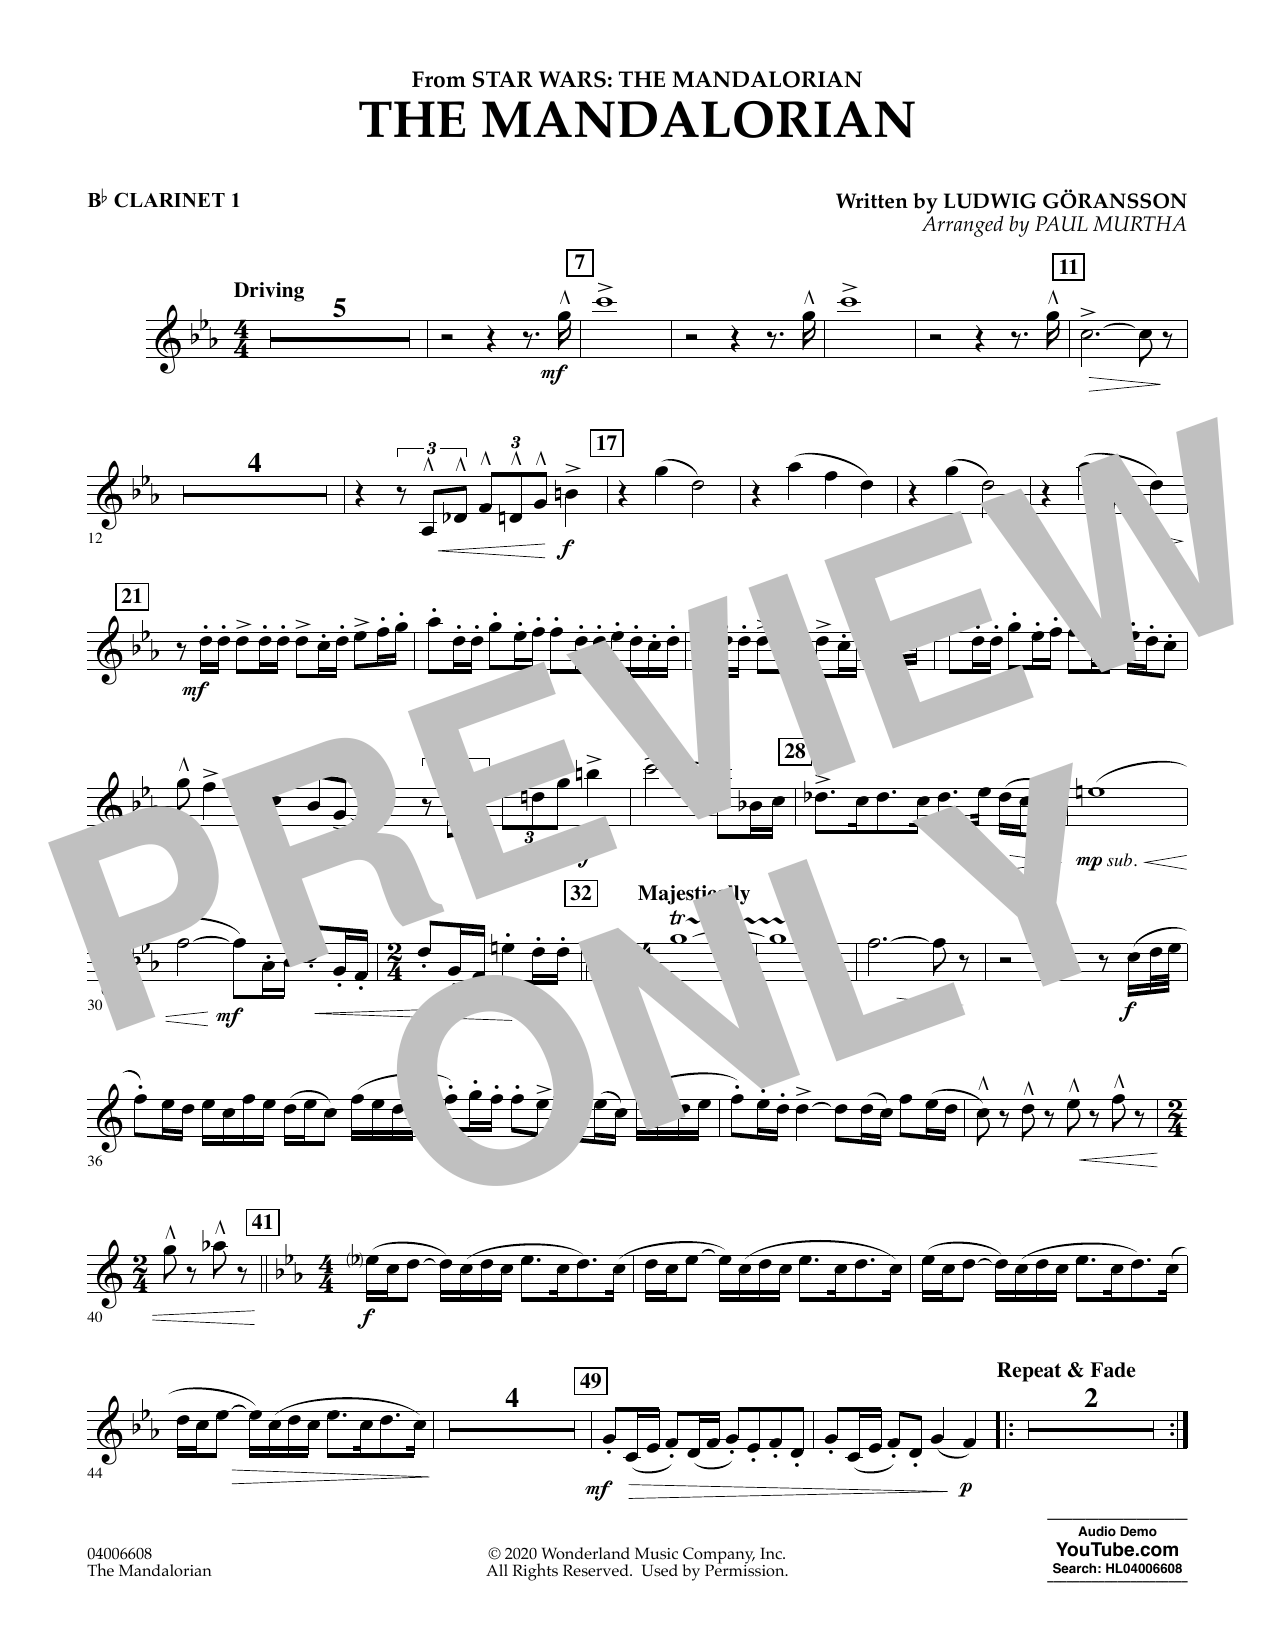 Ludwig Goransson The Mandalorian (from Star Wars: The Mandalorian) (arr. Paul Murtha) - Bb Clarinet 1 sheet music notes and chords. Download Printable PDF.